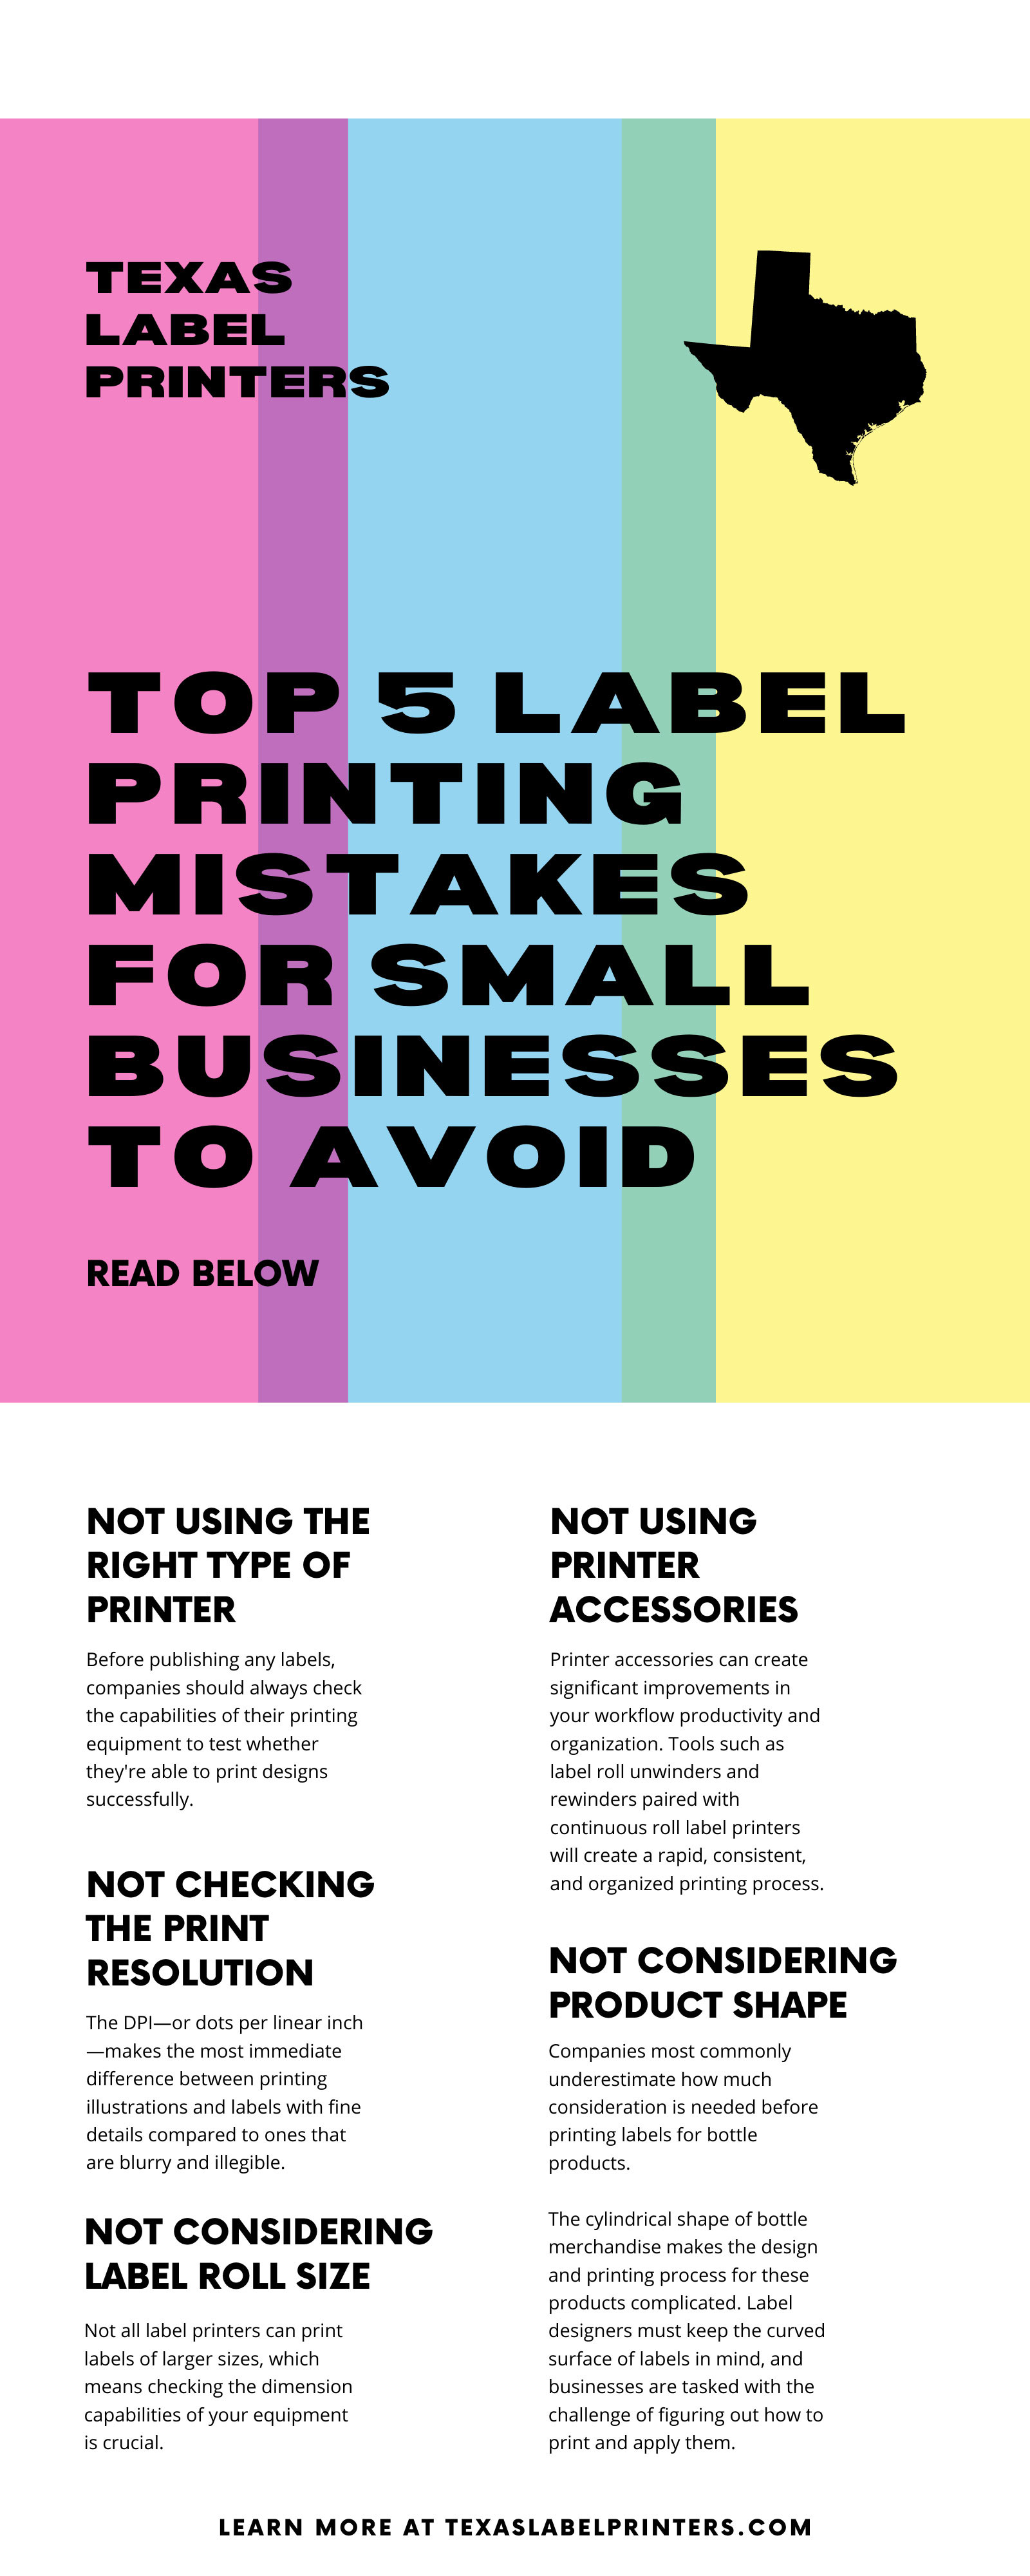 Top 5 Label Printing Mistakes for Small Businesses To Avoid Infographic